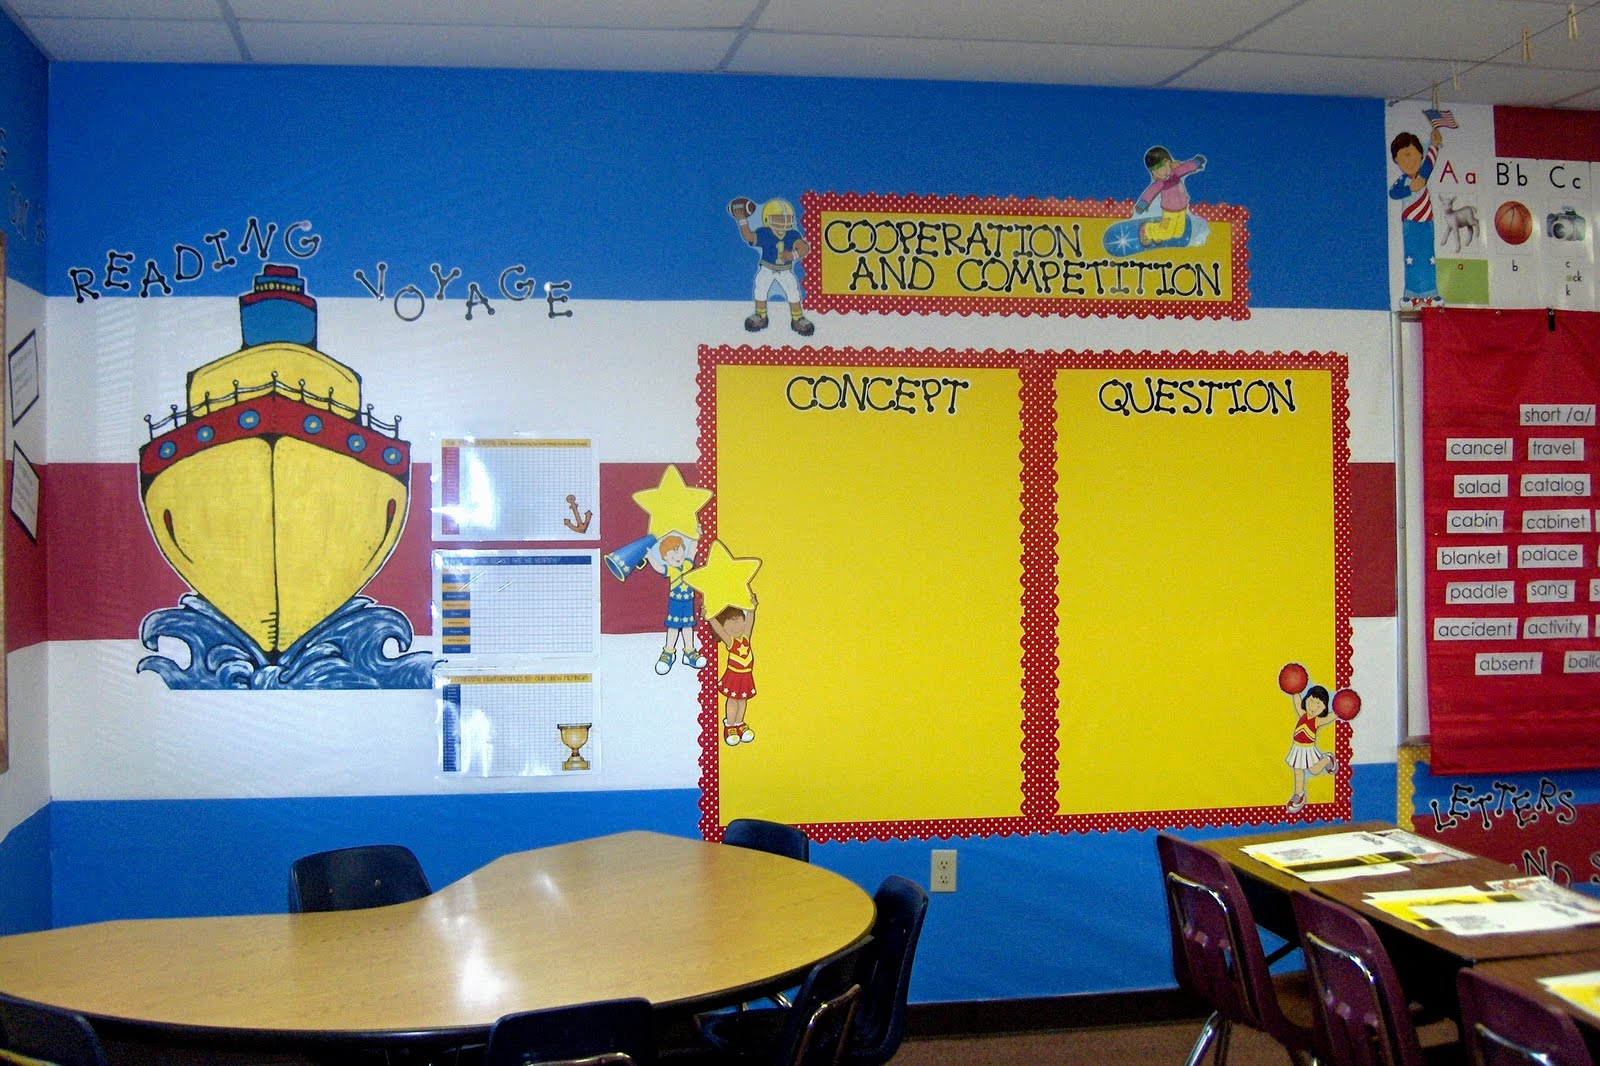 Classroom Wall Design Ideas ~ Classroom set up ideas and wall displays for elementary